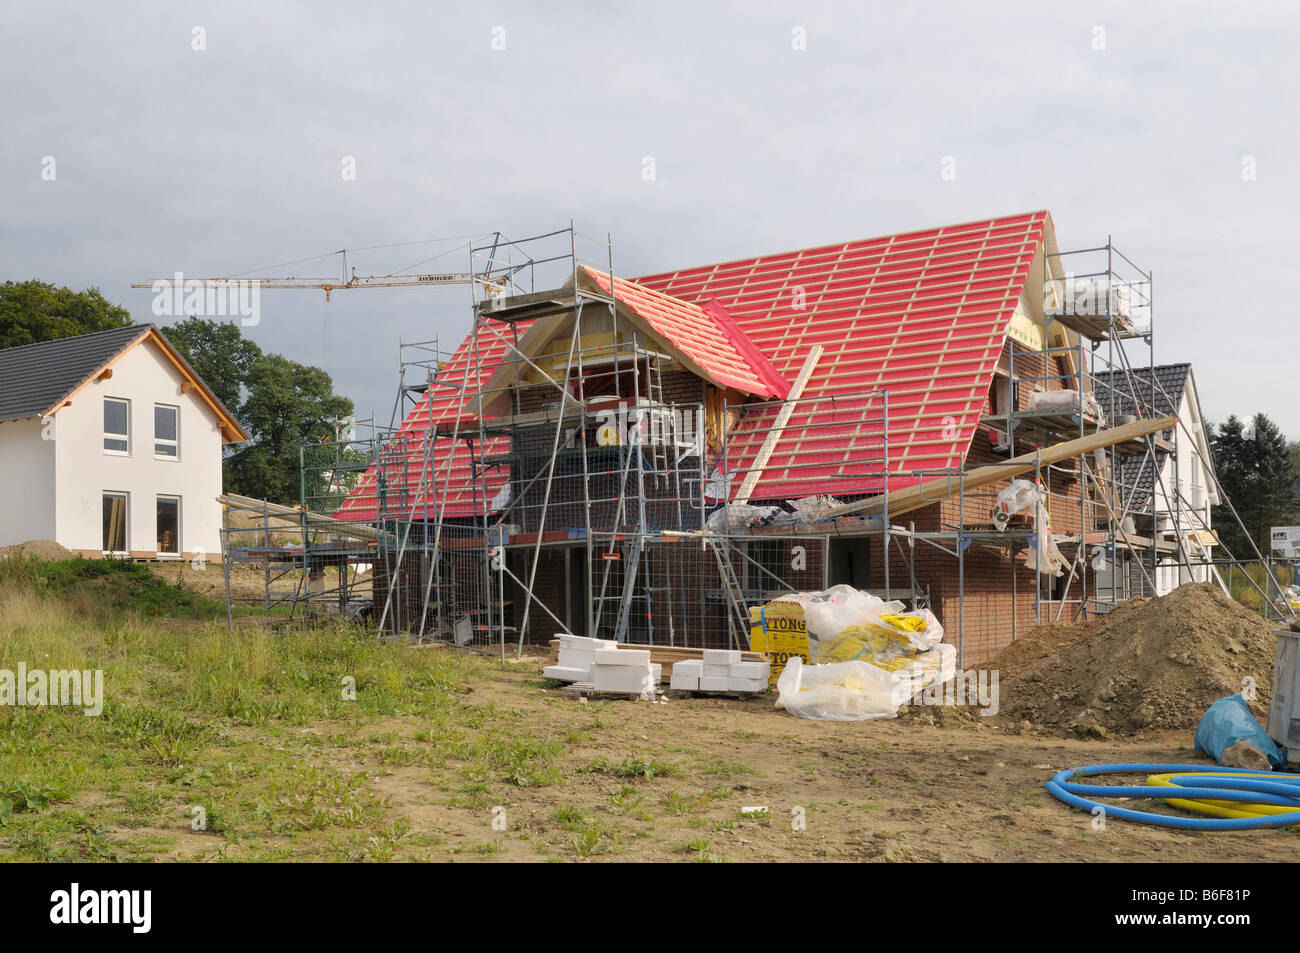 Residential houses, new construction surrounded by scaffolding with dormer roof, North Rhine-Westphalia, Germany, - Stock Image